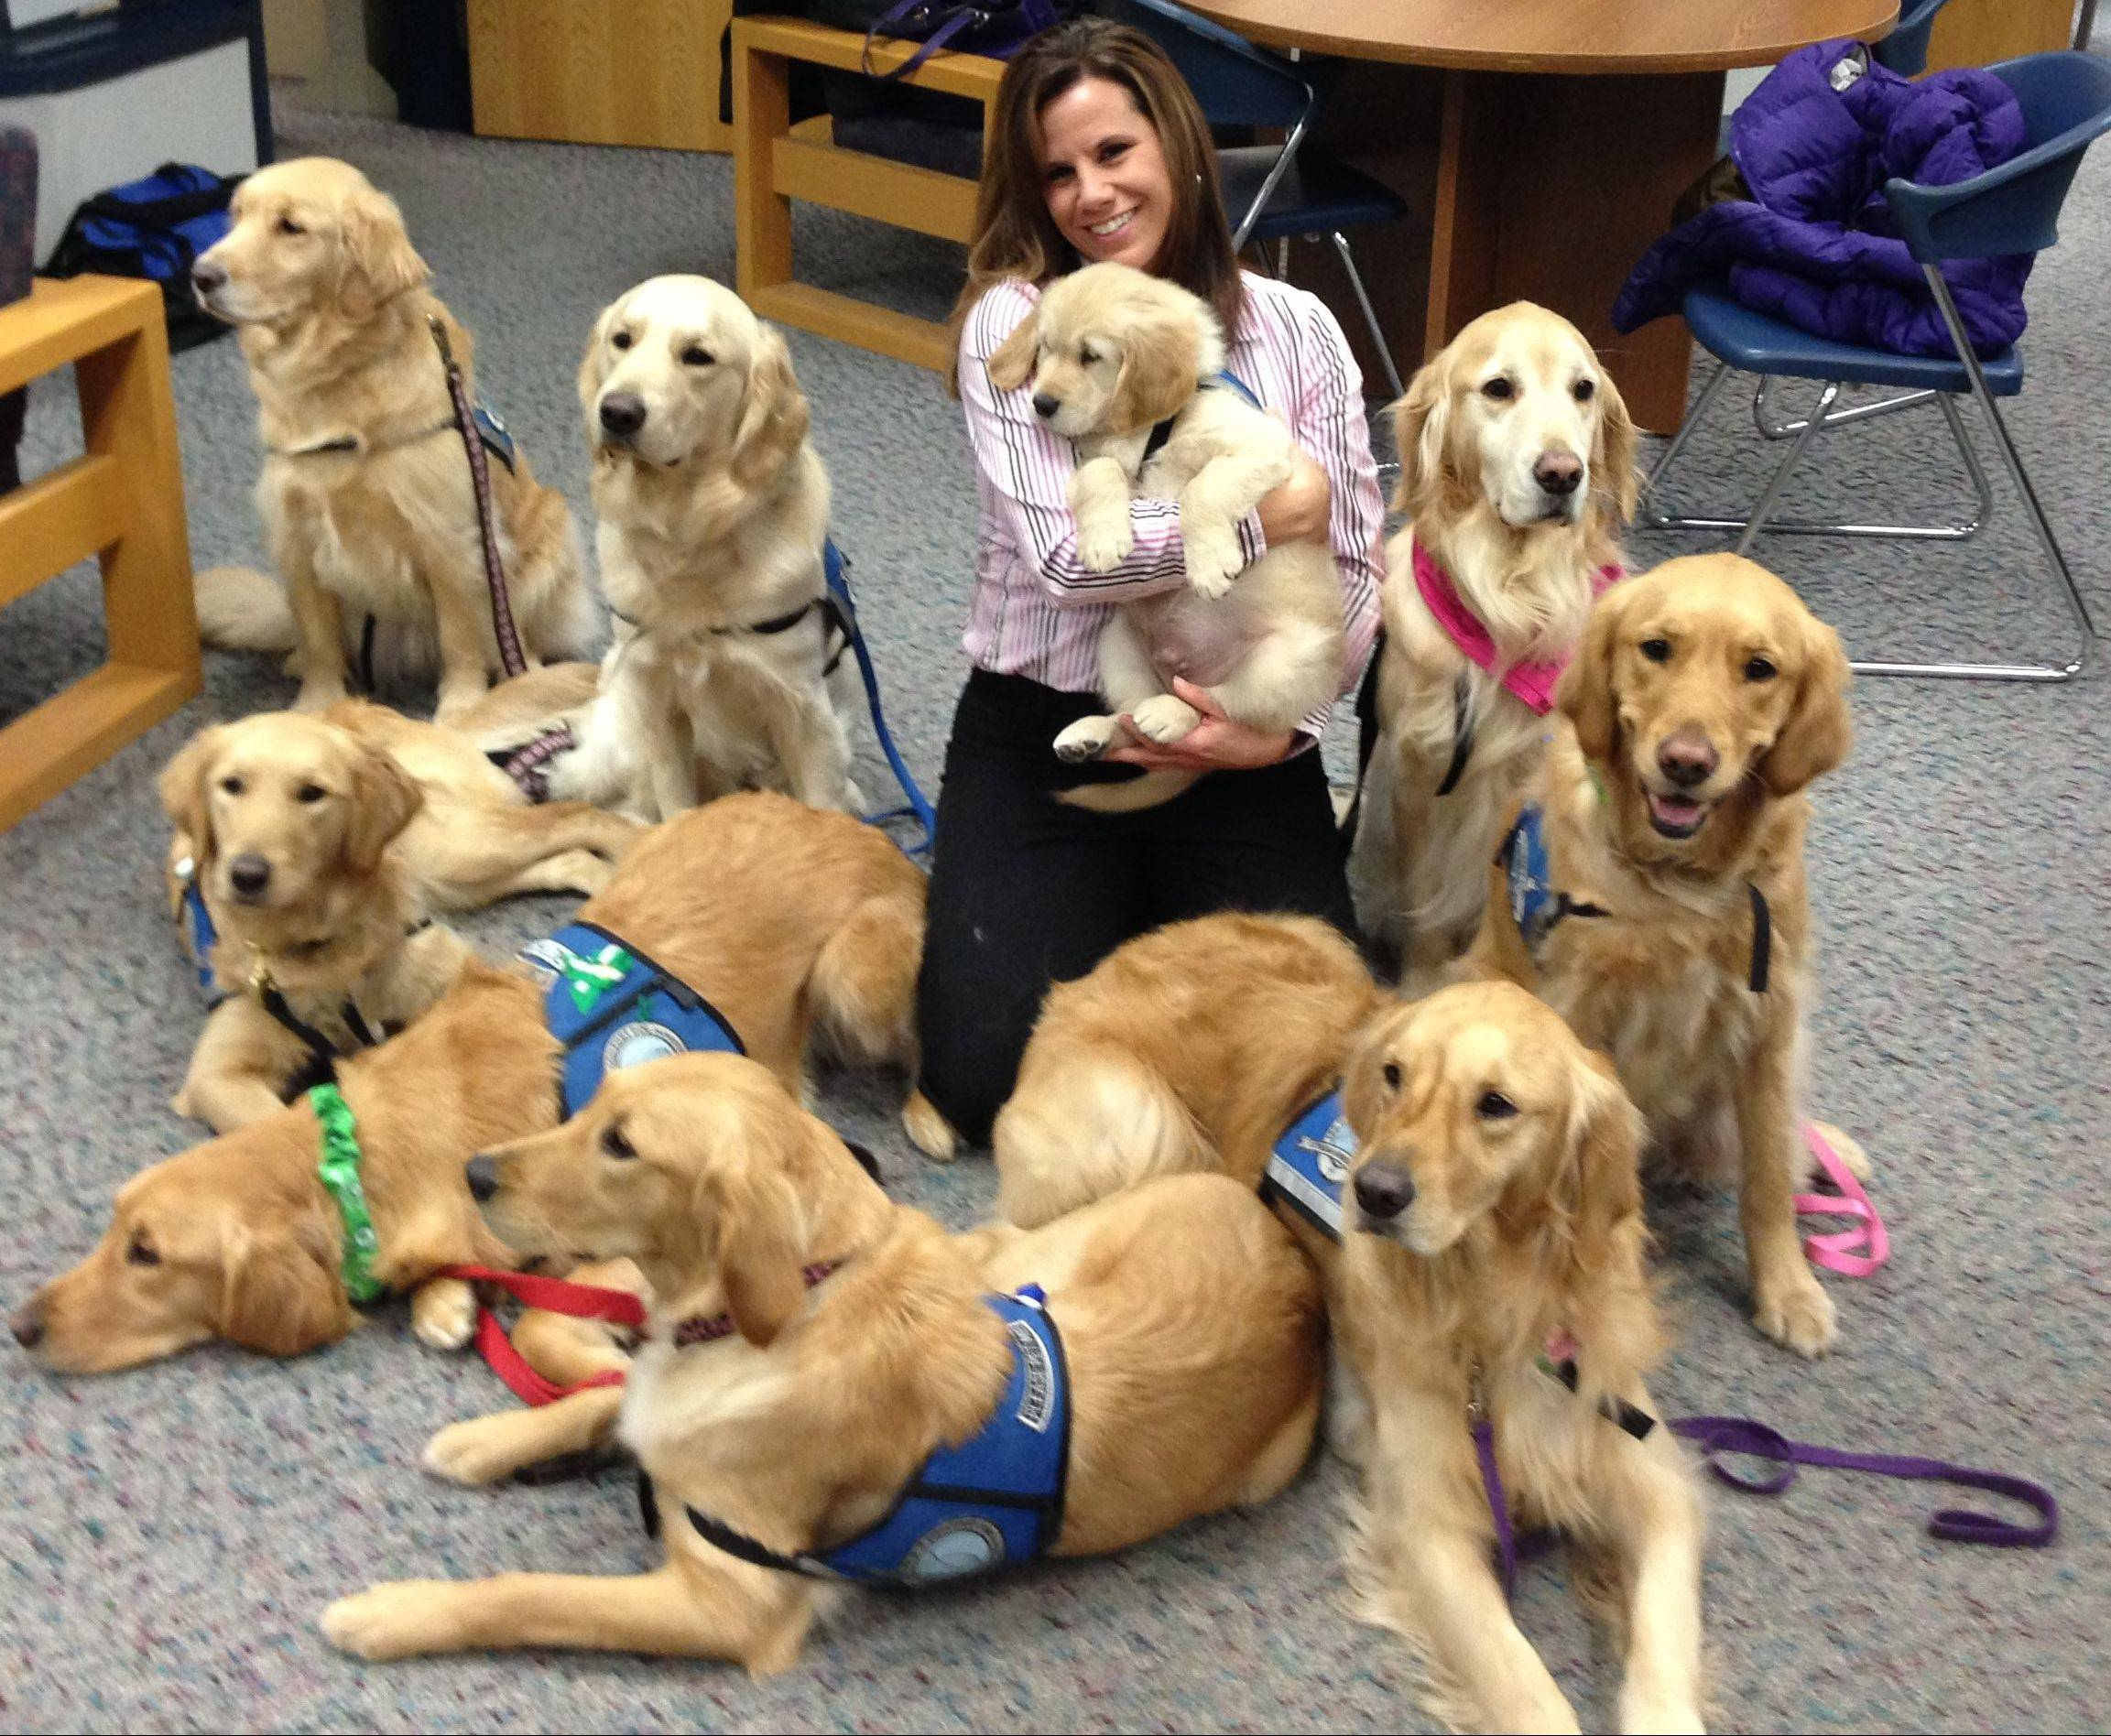 Comfort dogs sent by Addison-based Lutheran Church Charities surround Newtown High School counselor Deidre Croce in January. She's holding Isaiah, then a 9-week-old puppy in training.